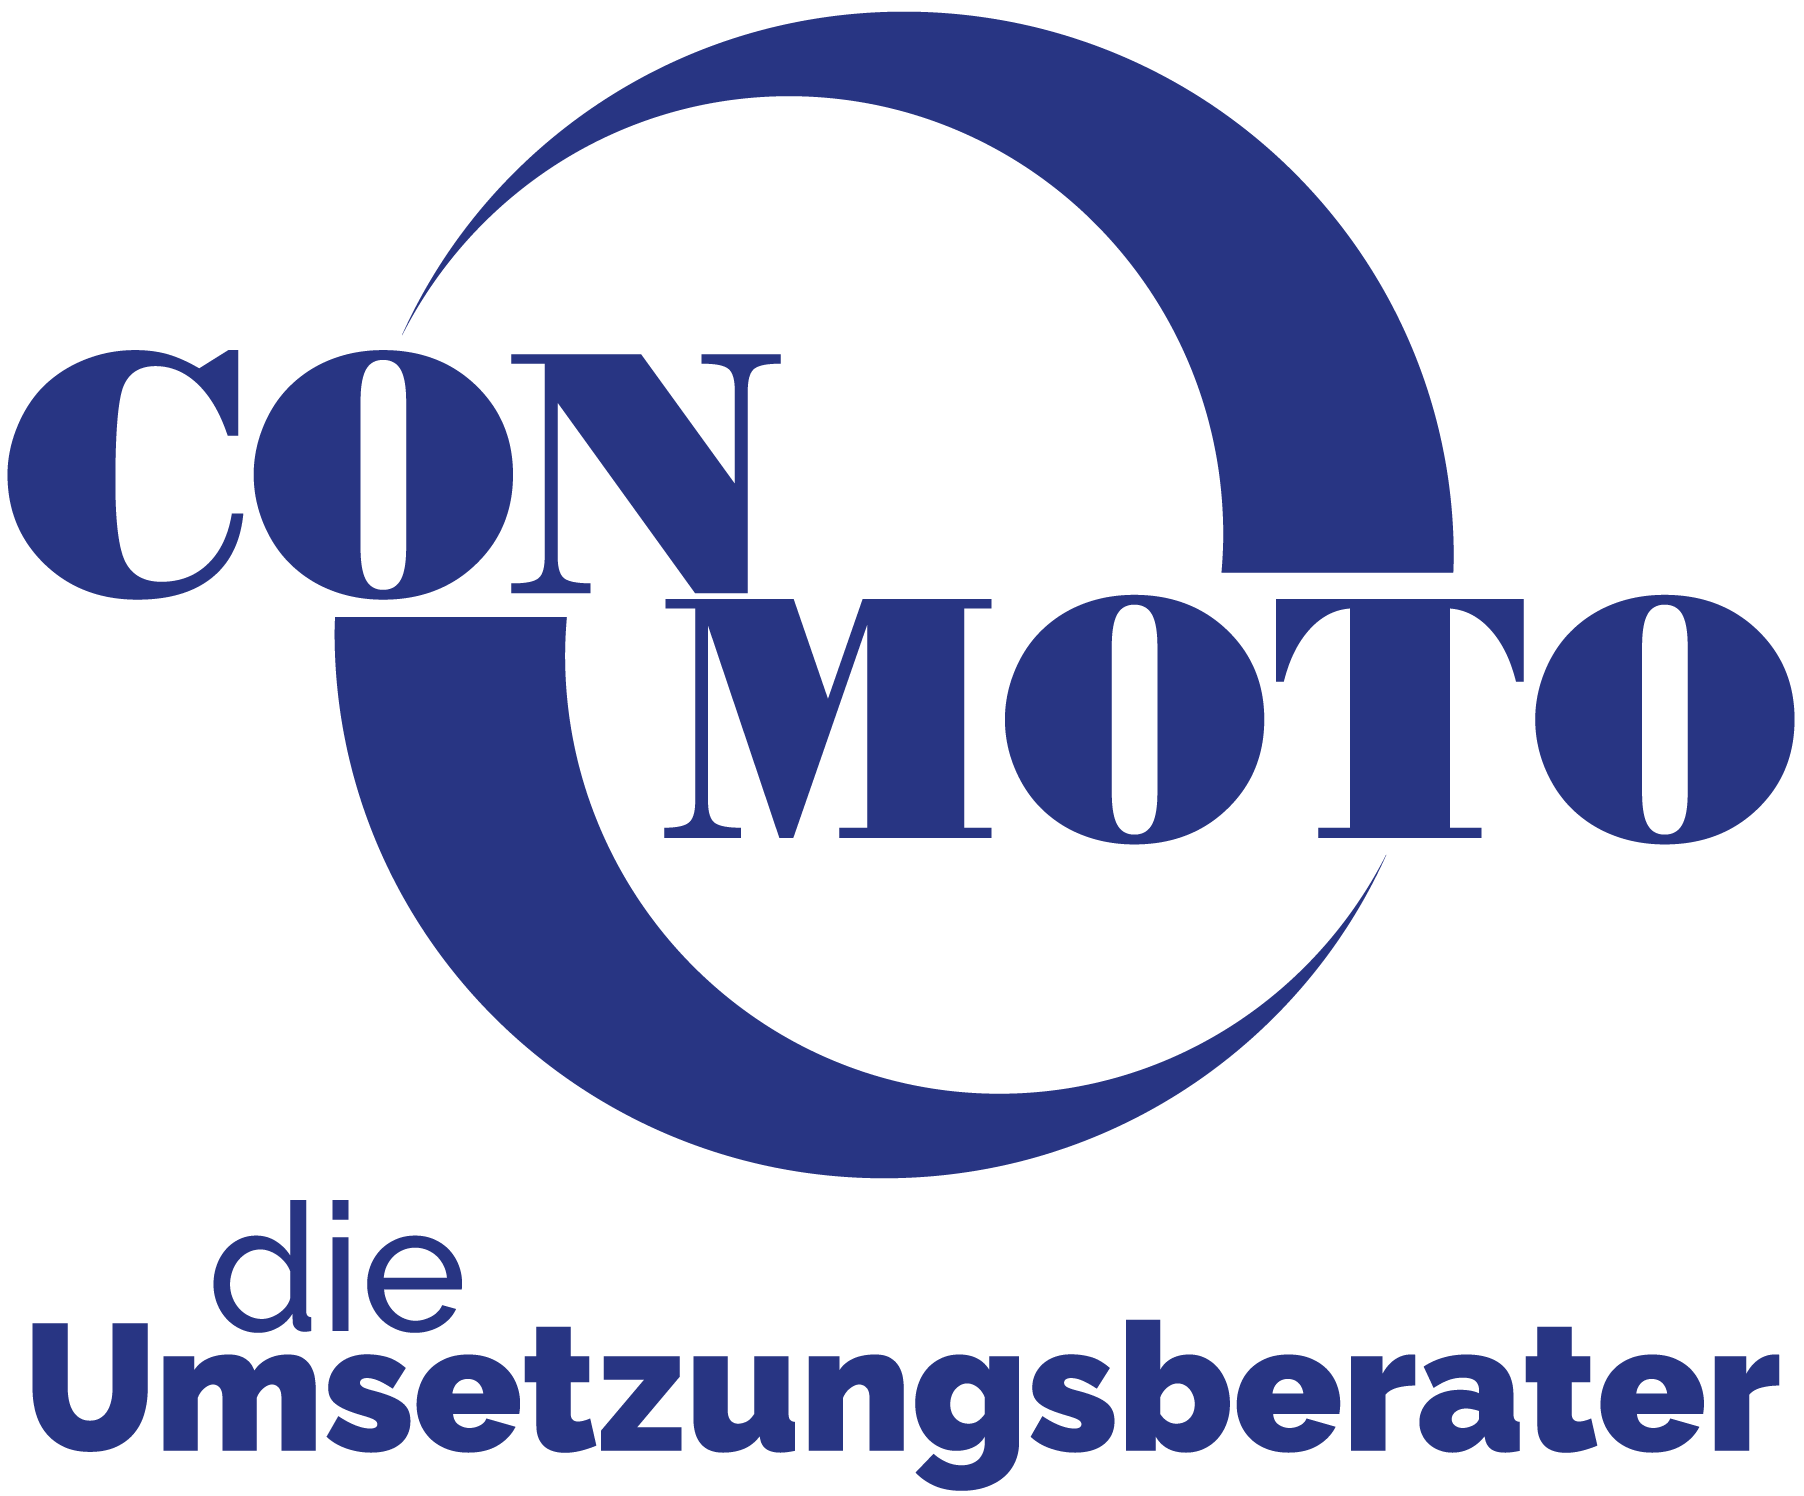 ConMoto Consulting Group